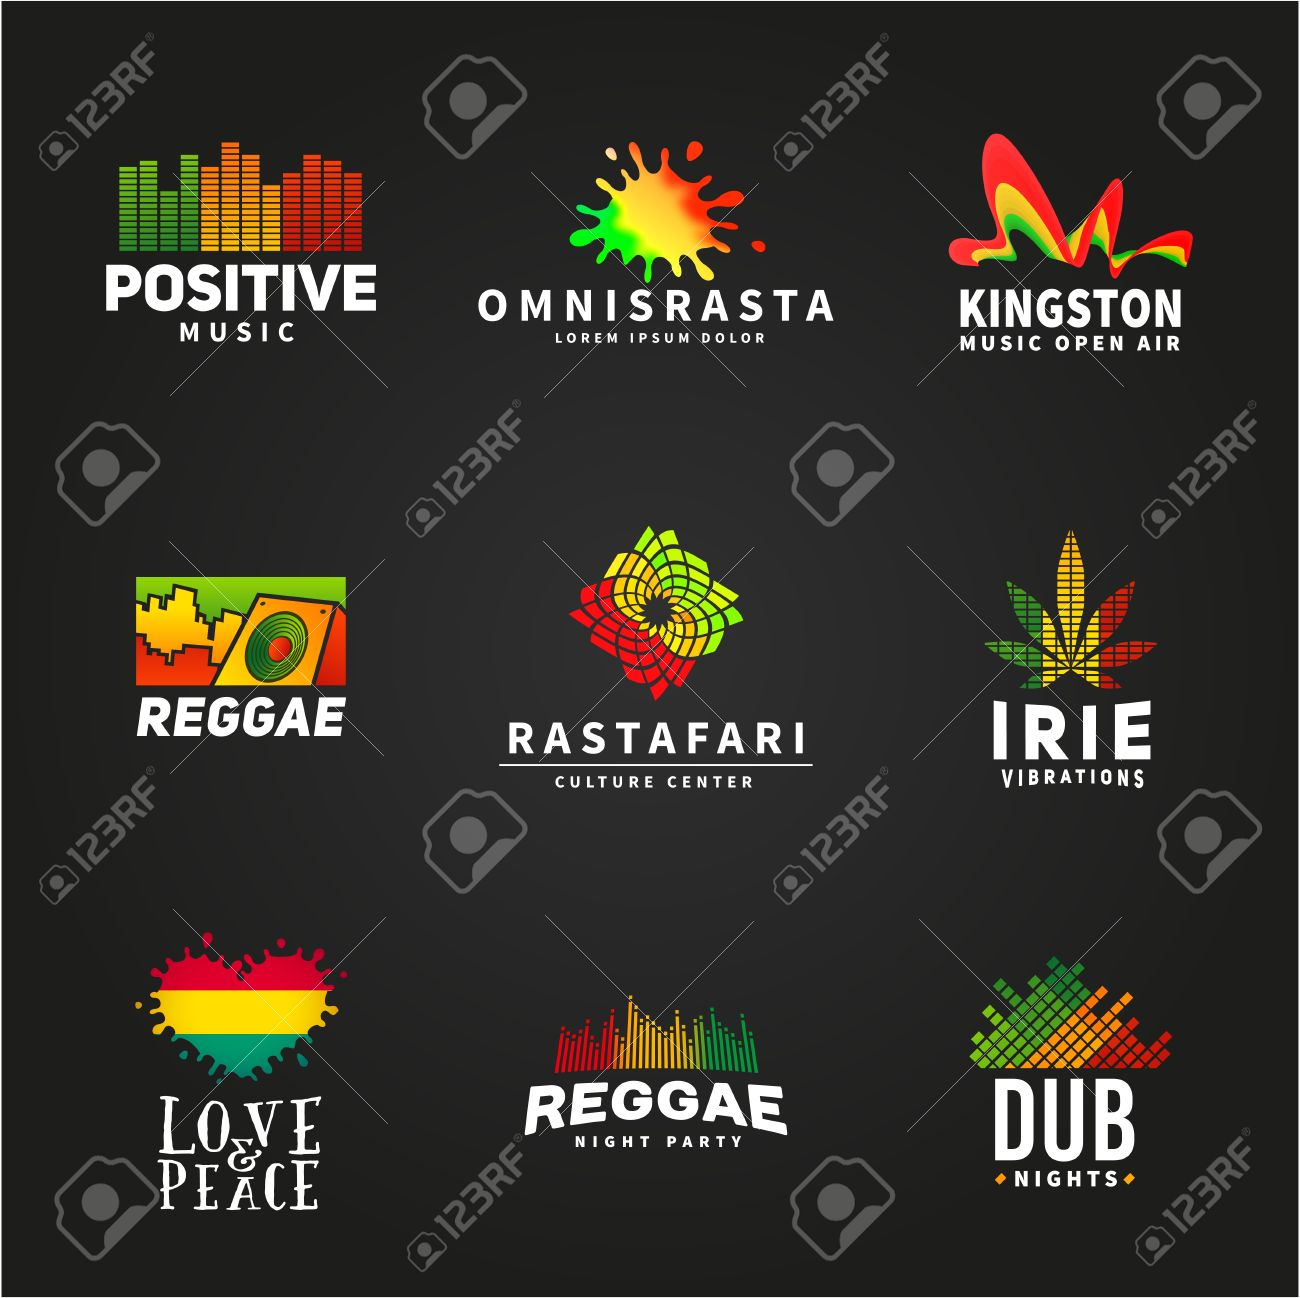 Rasta colors stock photos royalty free business images set of positive africa ephiopia flag logo design jamaica reggae dance music vector template biocorpaavc Image collections